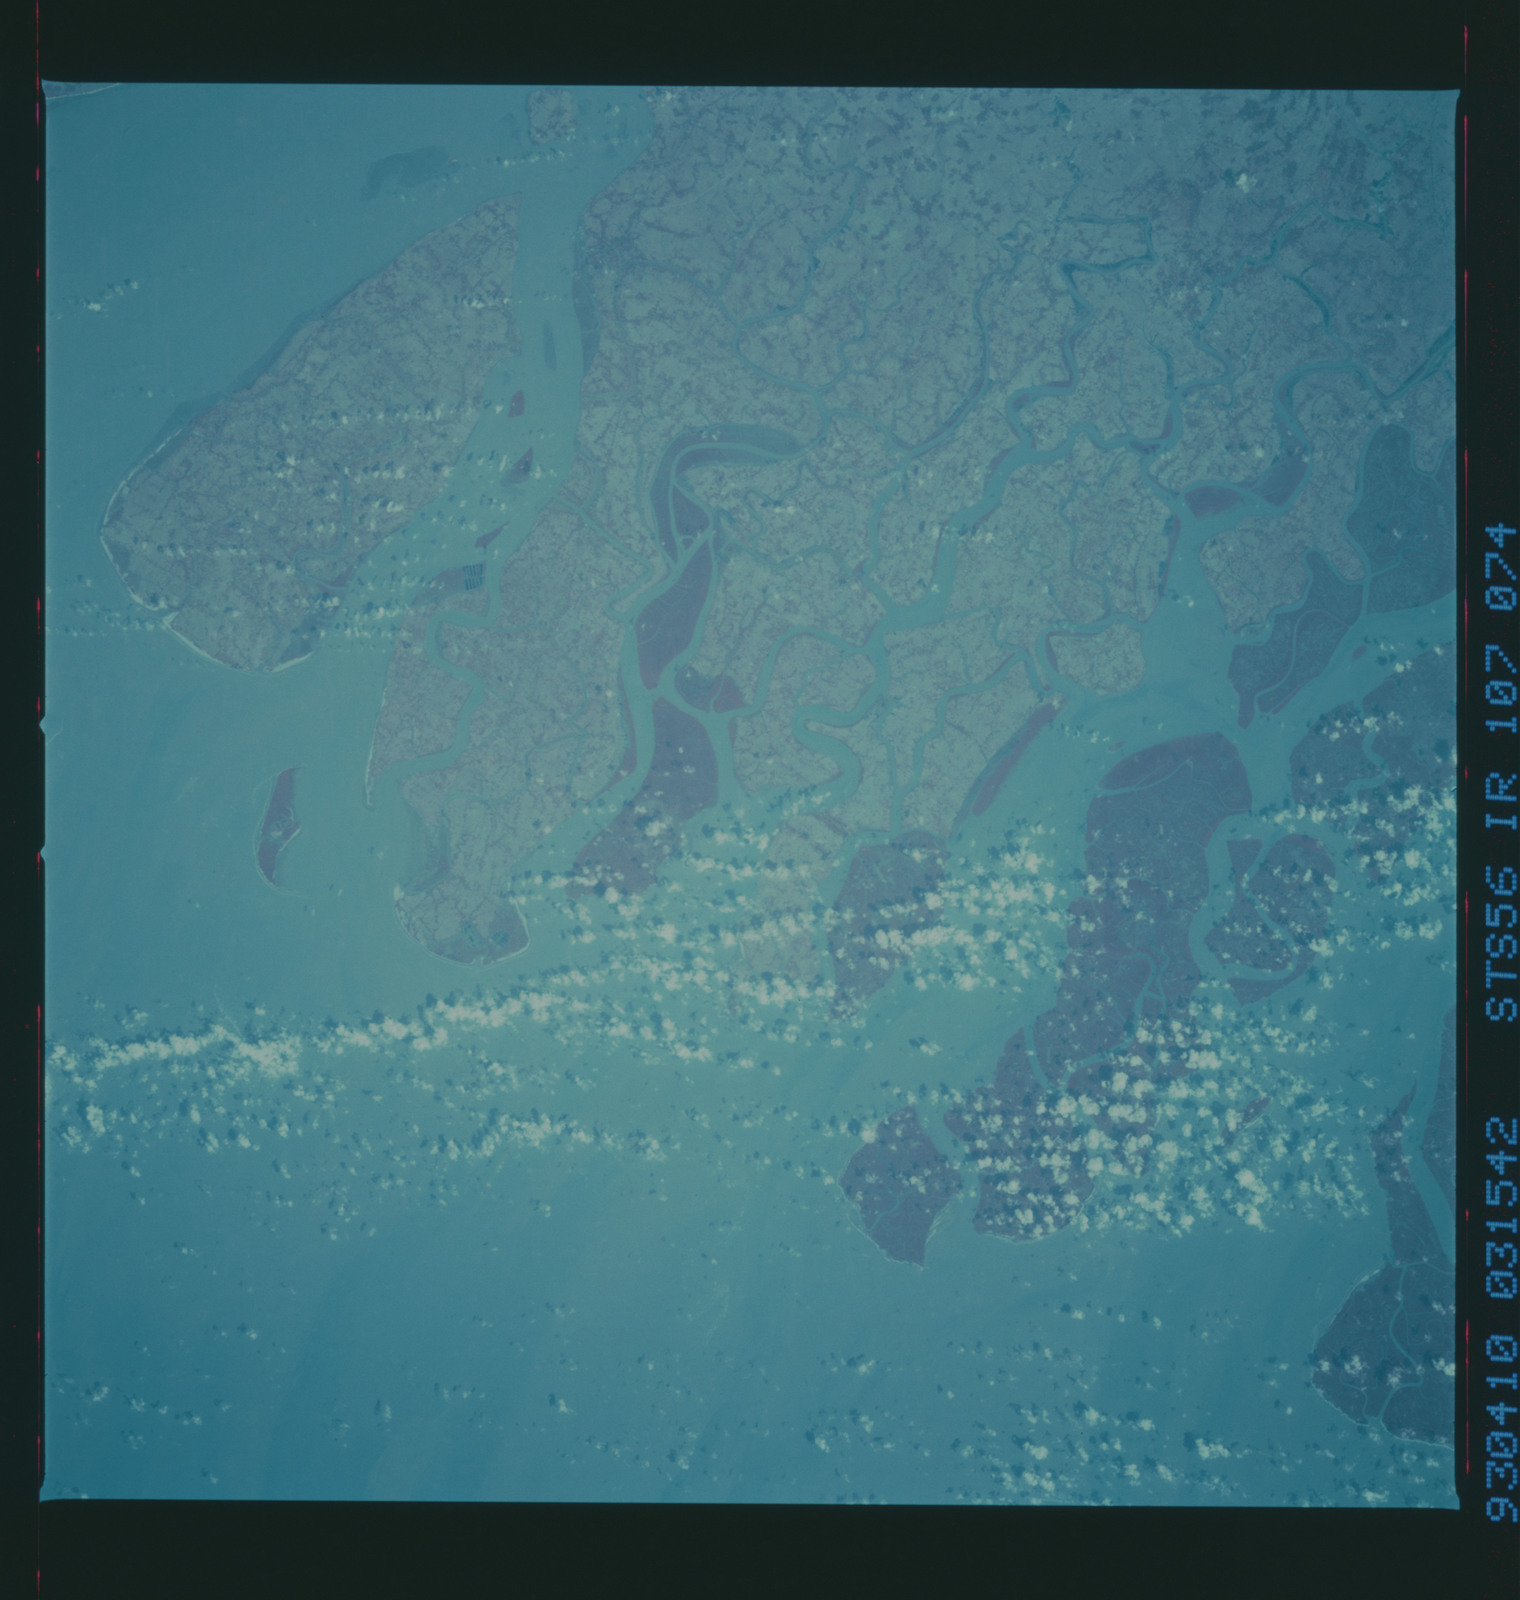 STS056-107-074 - STS-056 - Earth observations taken from Discovery during STS-56 mission